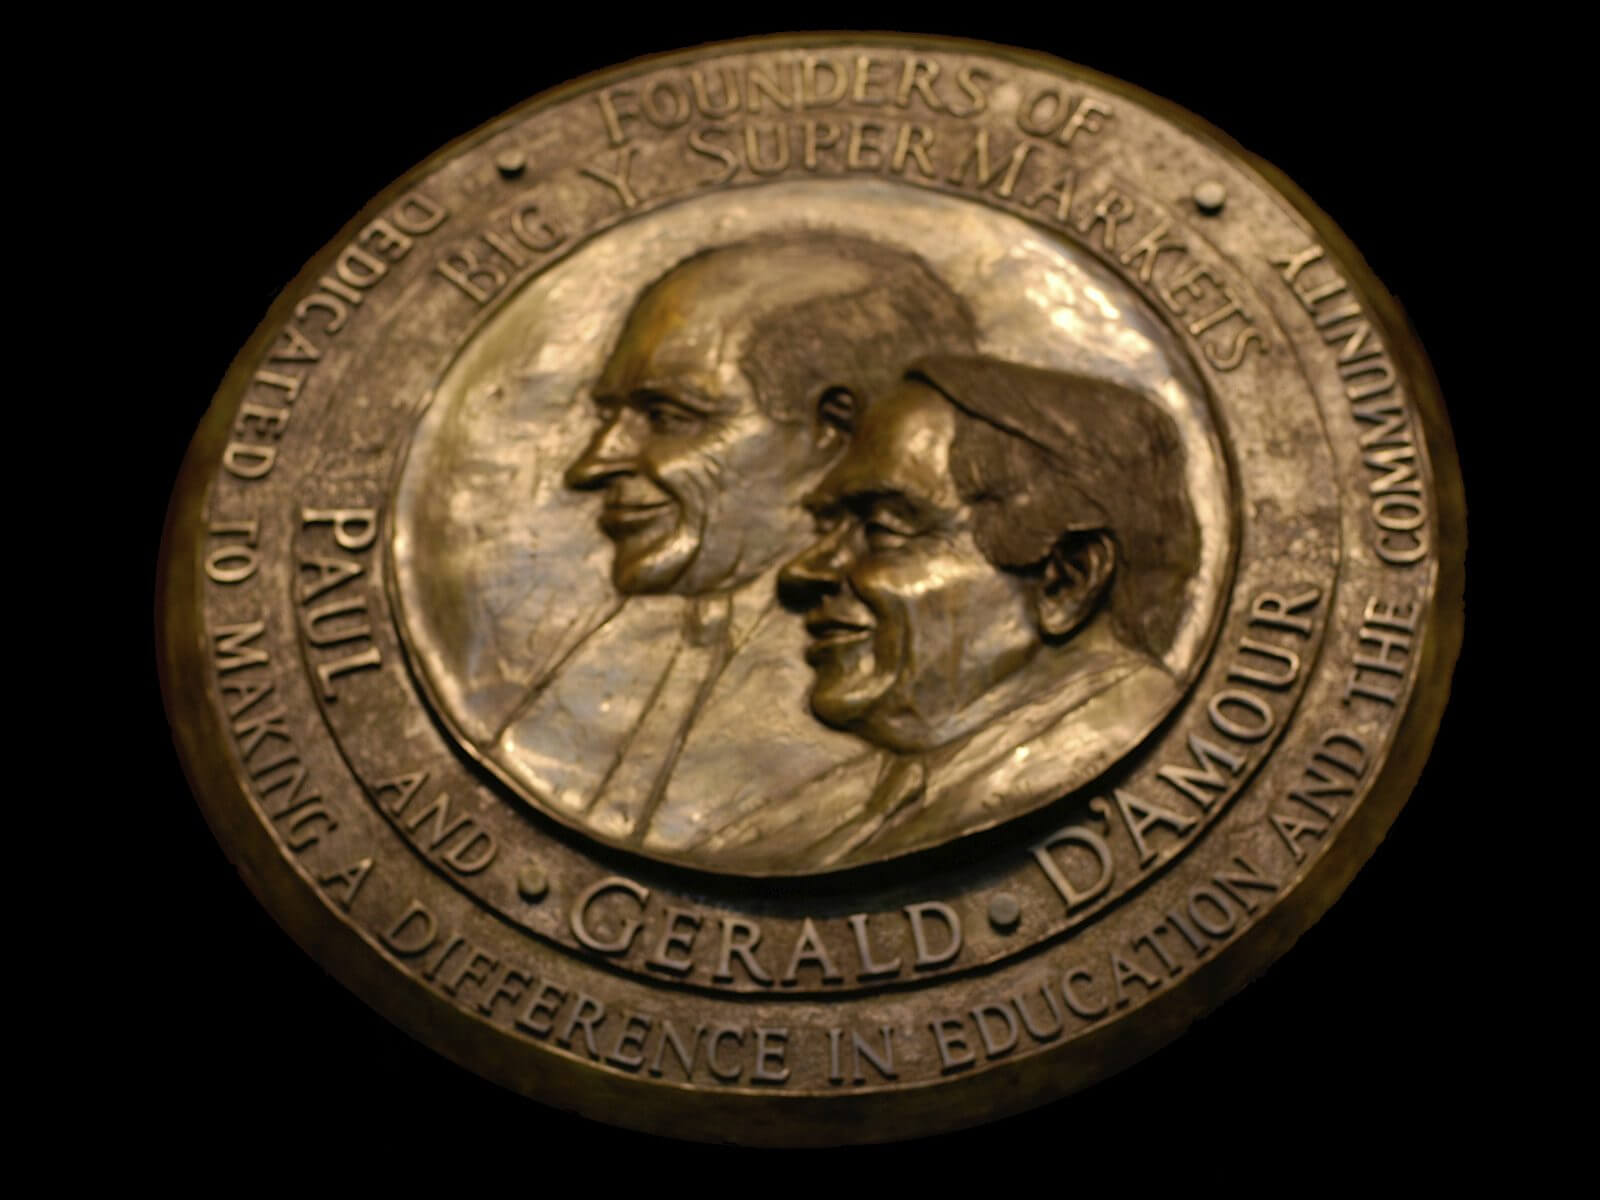 Paul and Gerald D'Amour relief portrait in bronze by Andrew DeVries installed in the Western New Englad College Library